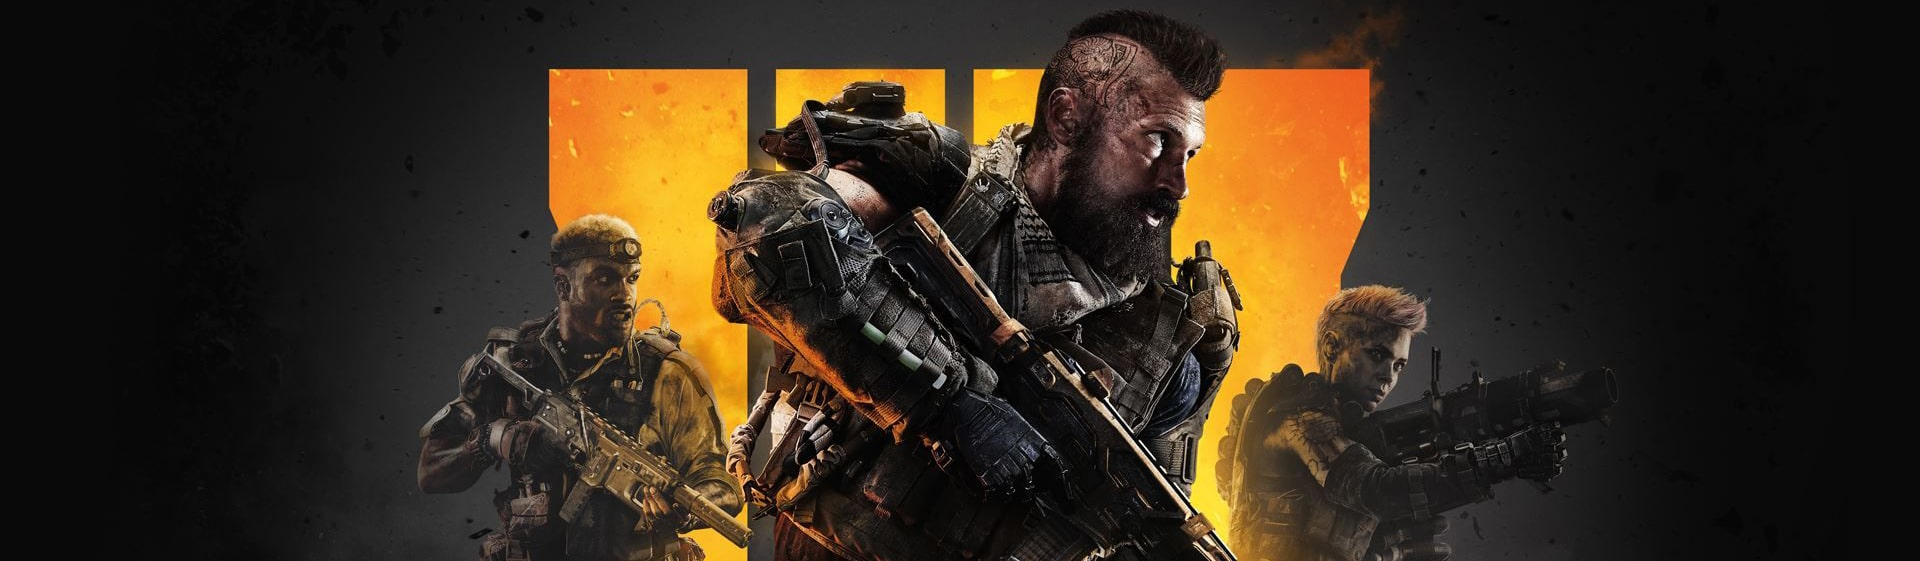 CALL OF DUTY: BLACK OPS 4 BREAKING THE SALES RECORD WITH VIRTUOS CONTRIBUTION IN ART